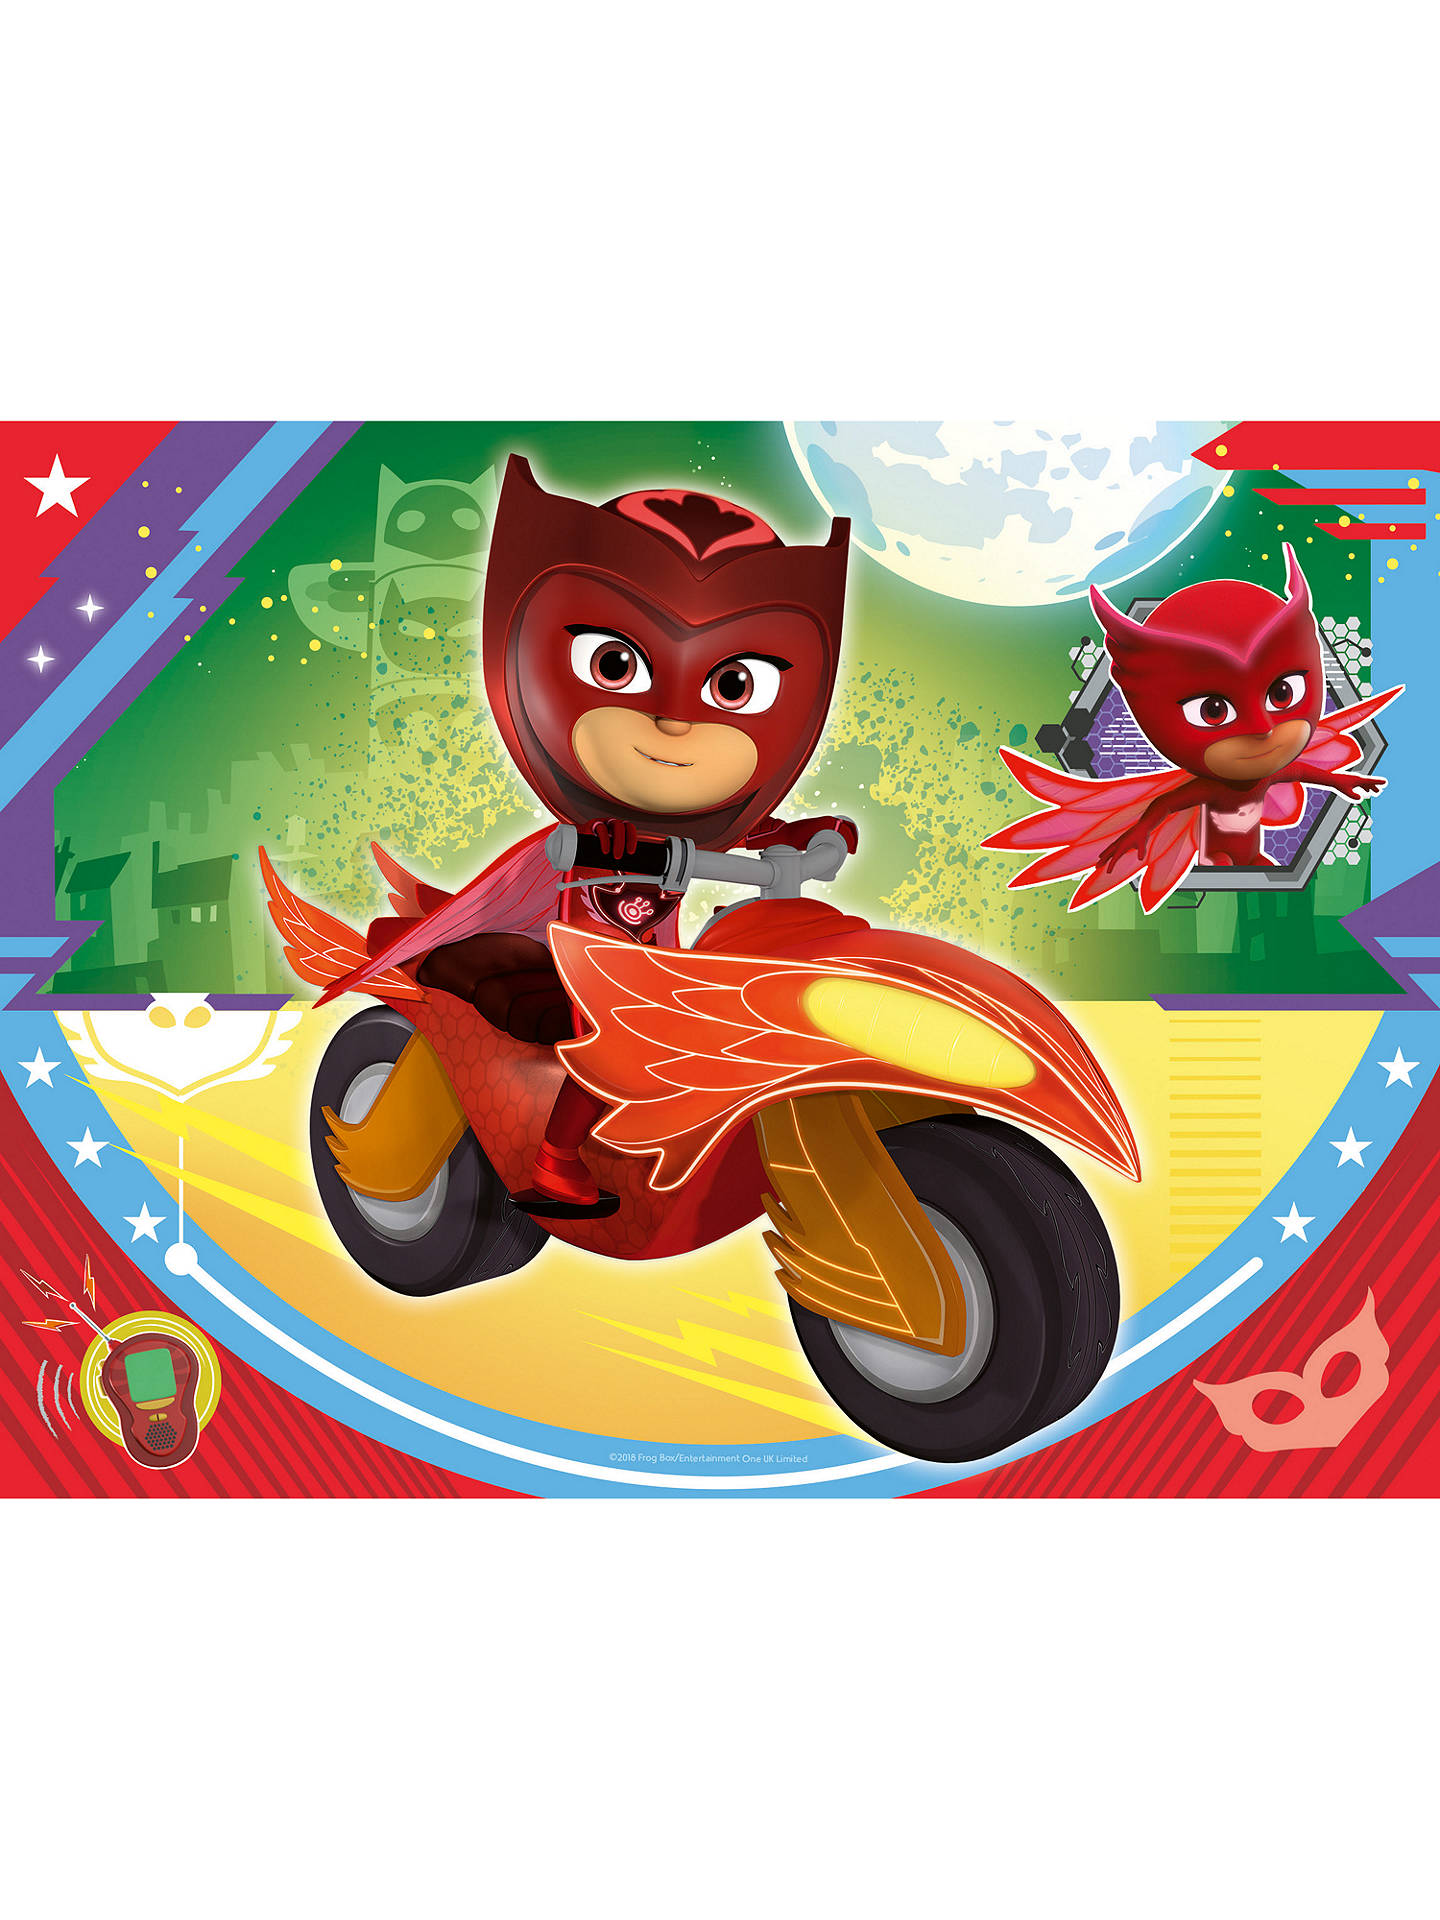 Buy Ravensburger PJ Masks Jigsaw Puzzle, Box of 4 Online at johnlewis.com